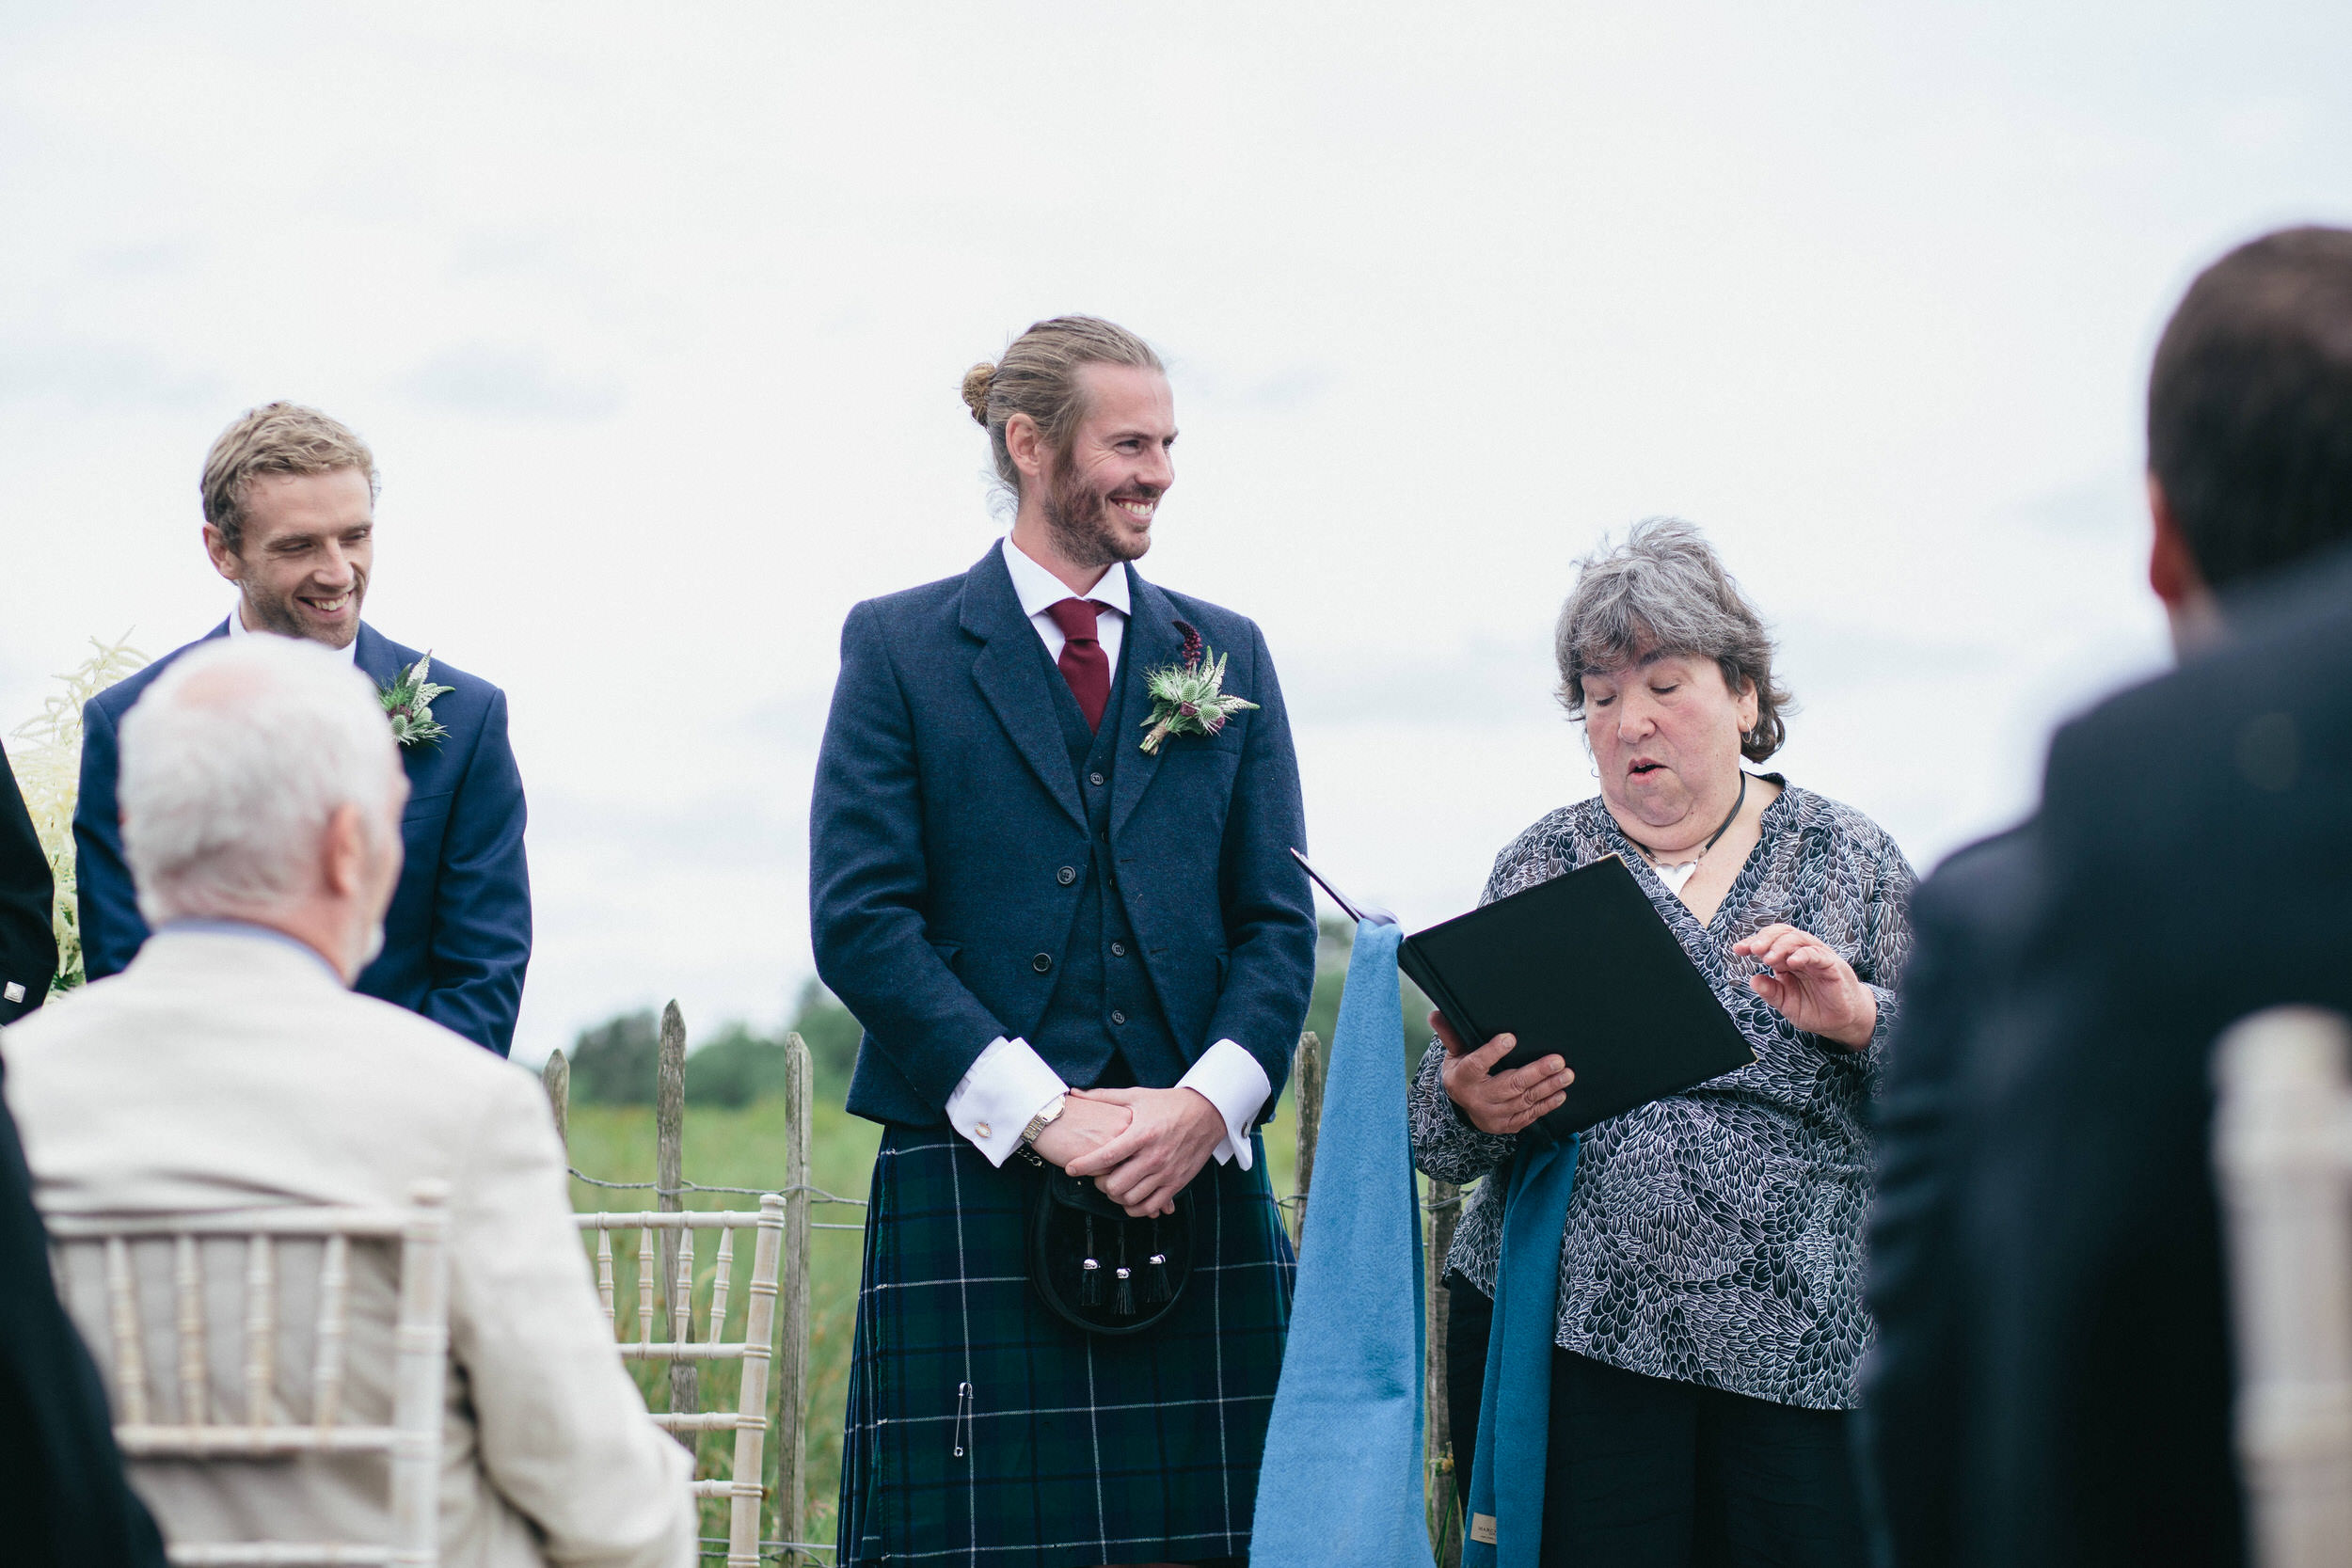 Alternative Quirky Wedding Photographer Scotland Borders Edinburgh 026.jpg